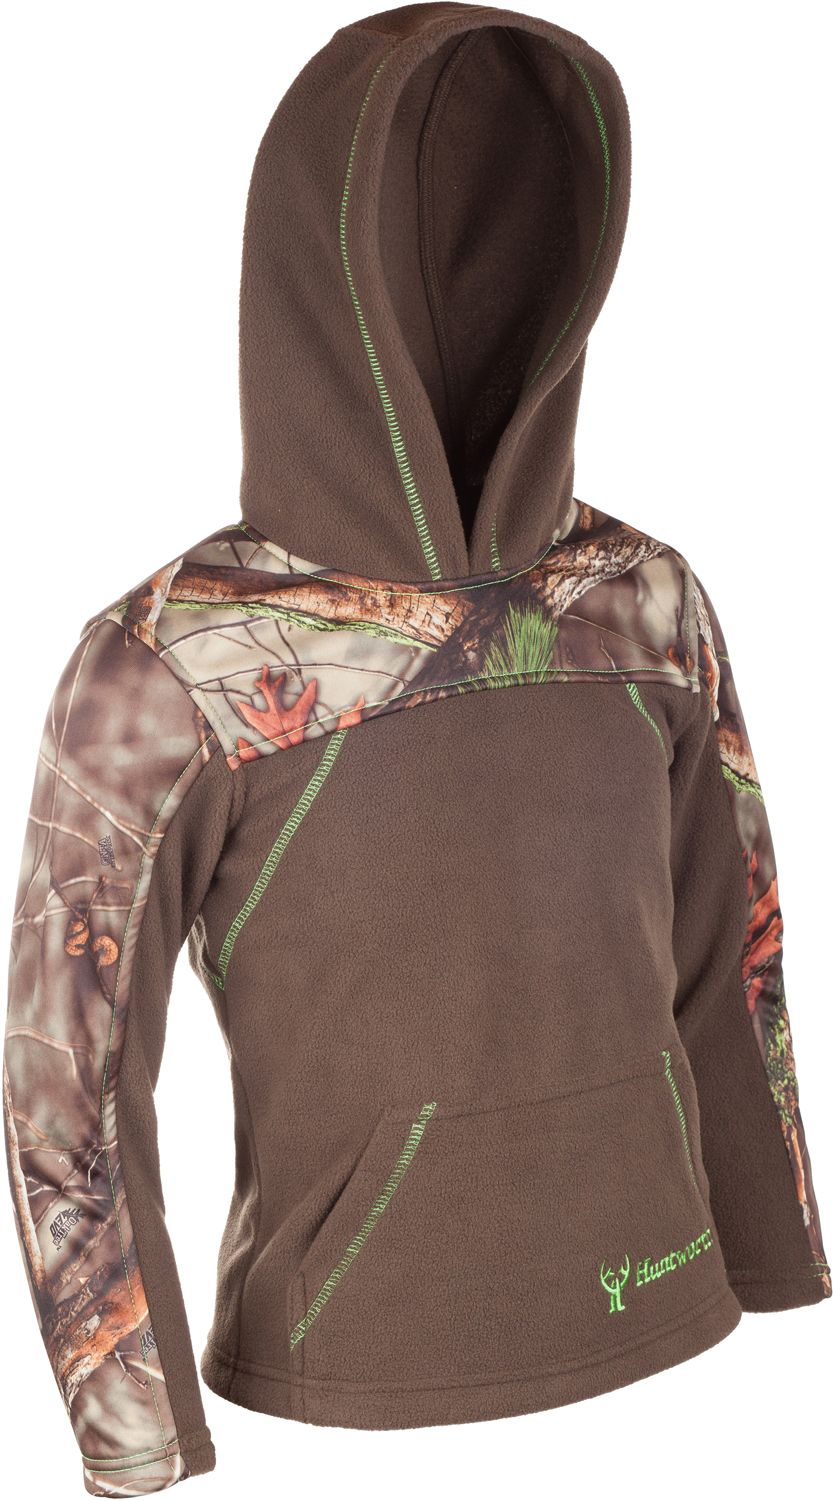 Huntworth Boys' 2-Tone Pullover Hoodie, Size: Small, Green thumbnail